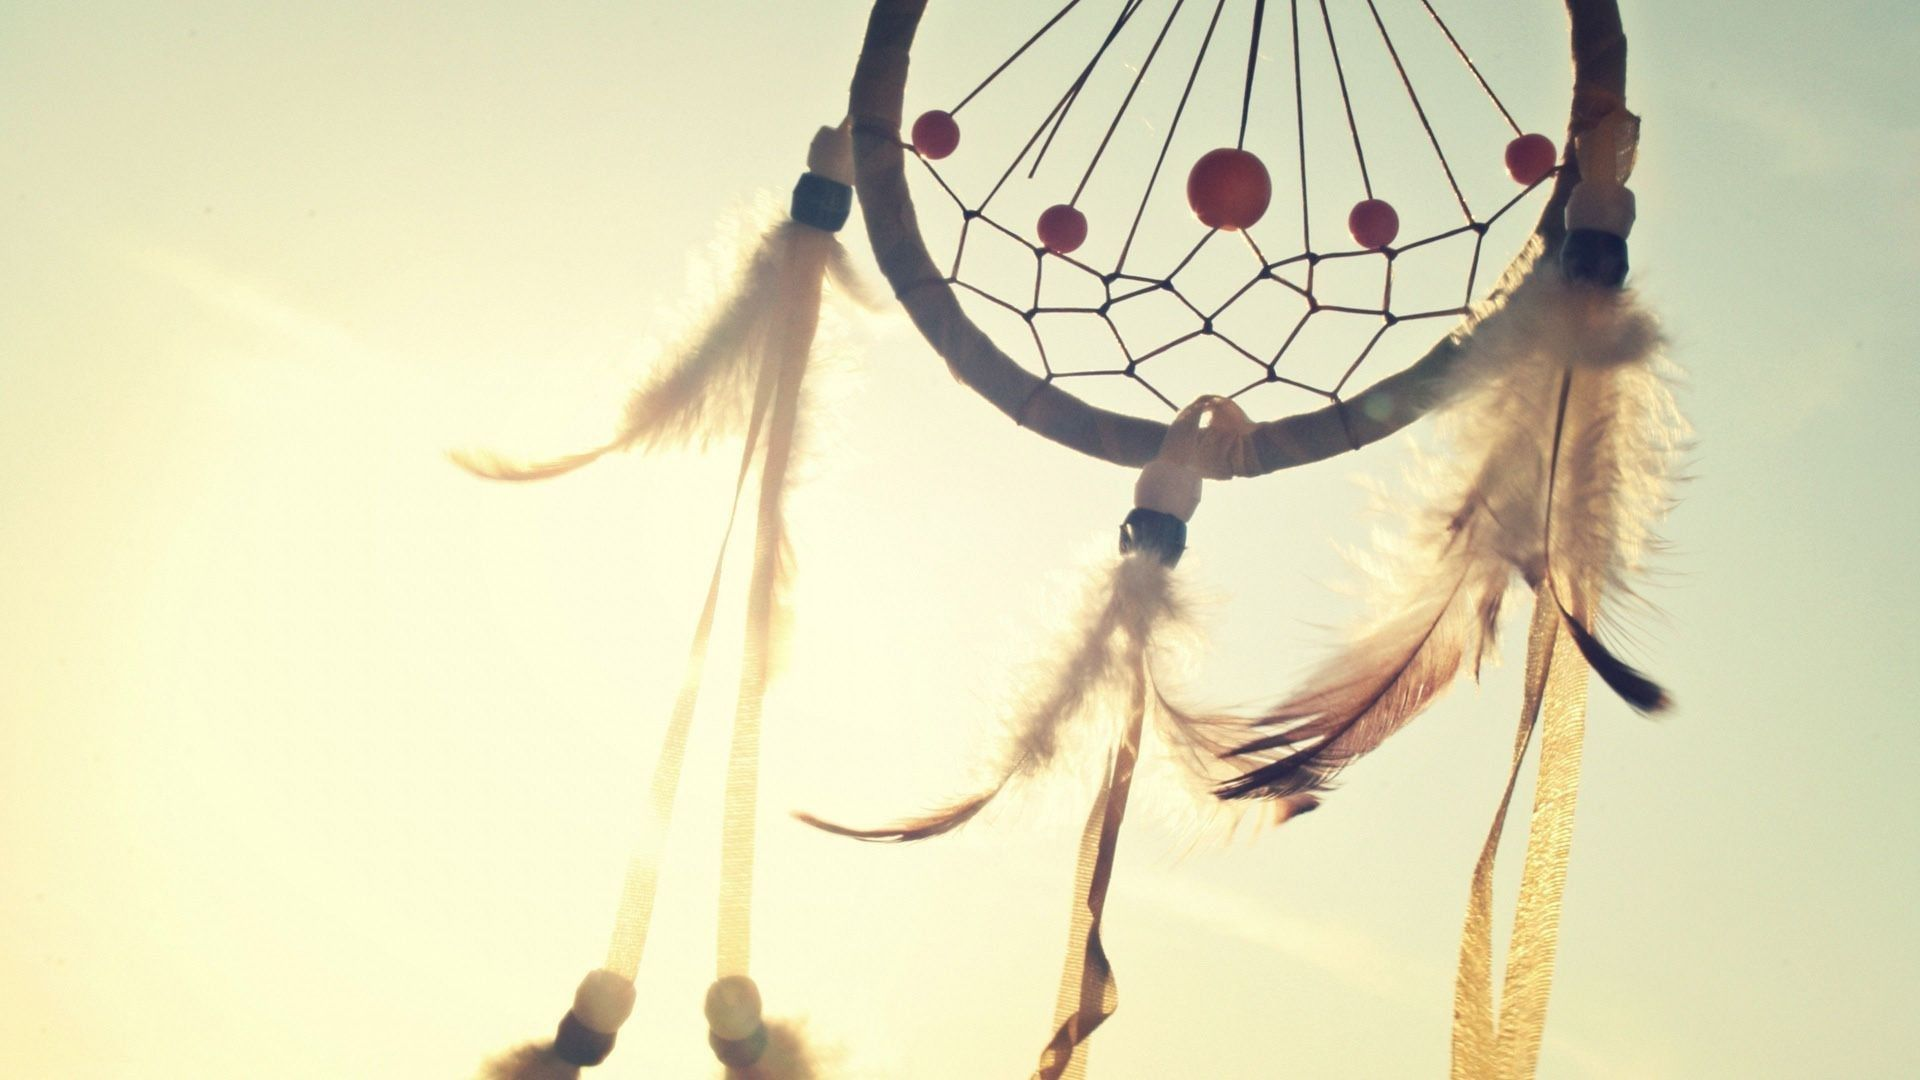 Dreamcatcher wallpapers hd free download ololoshenka pinterest dreamcatcher wallpapers hd free download voltagebd